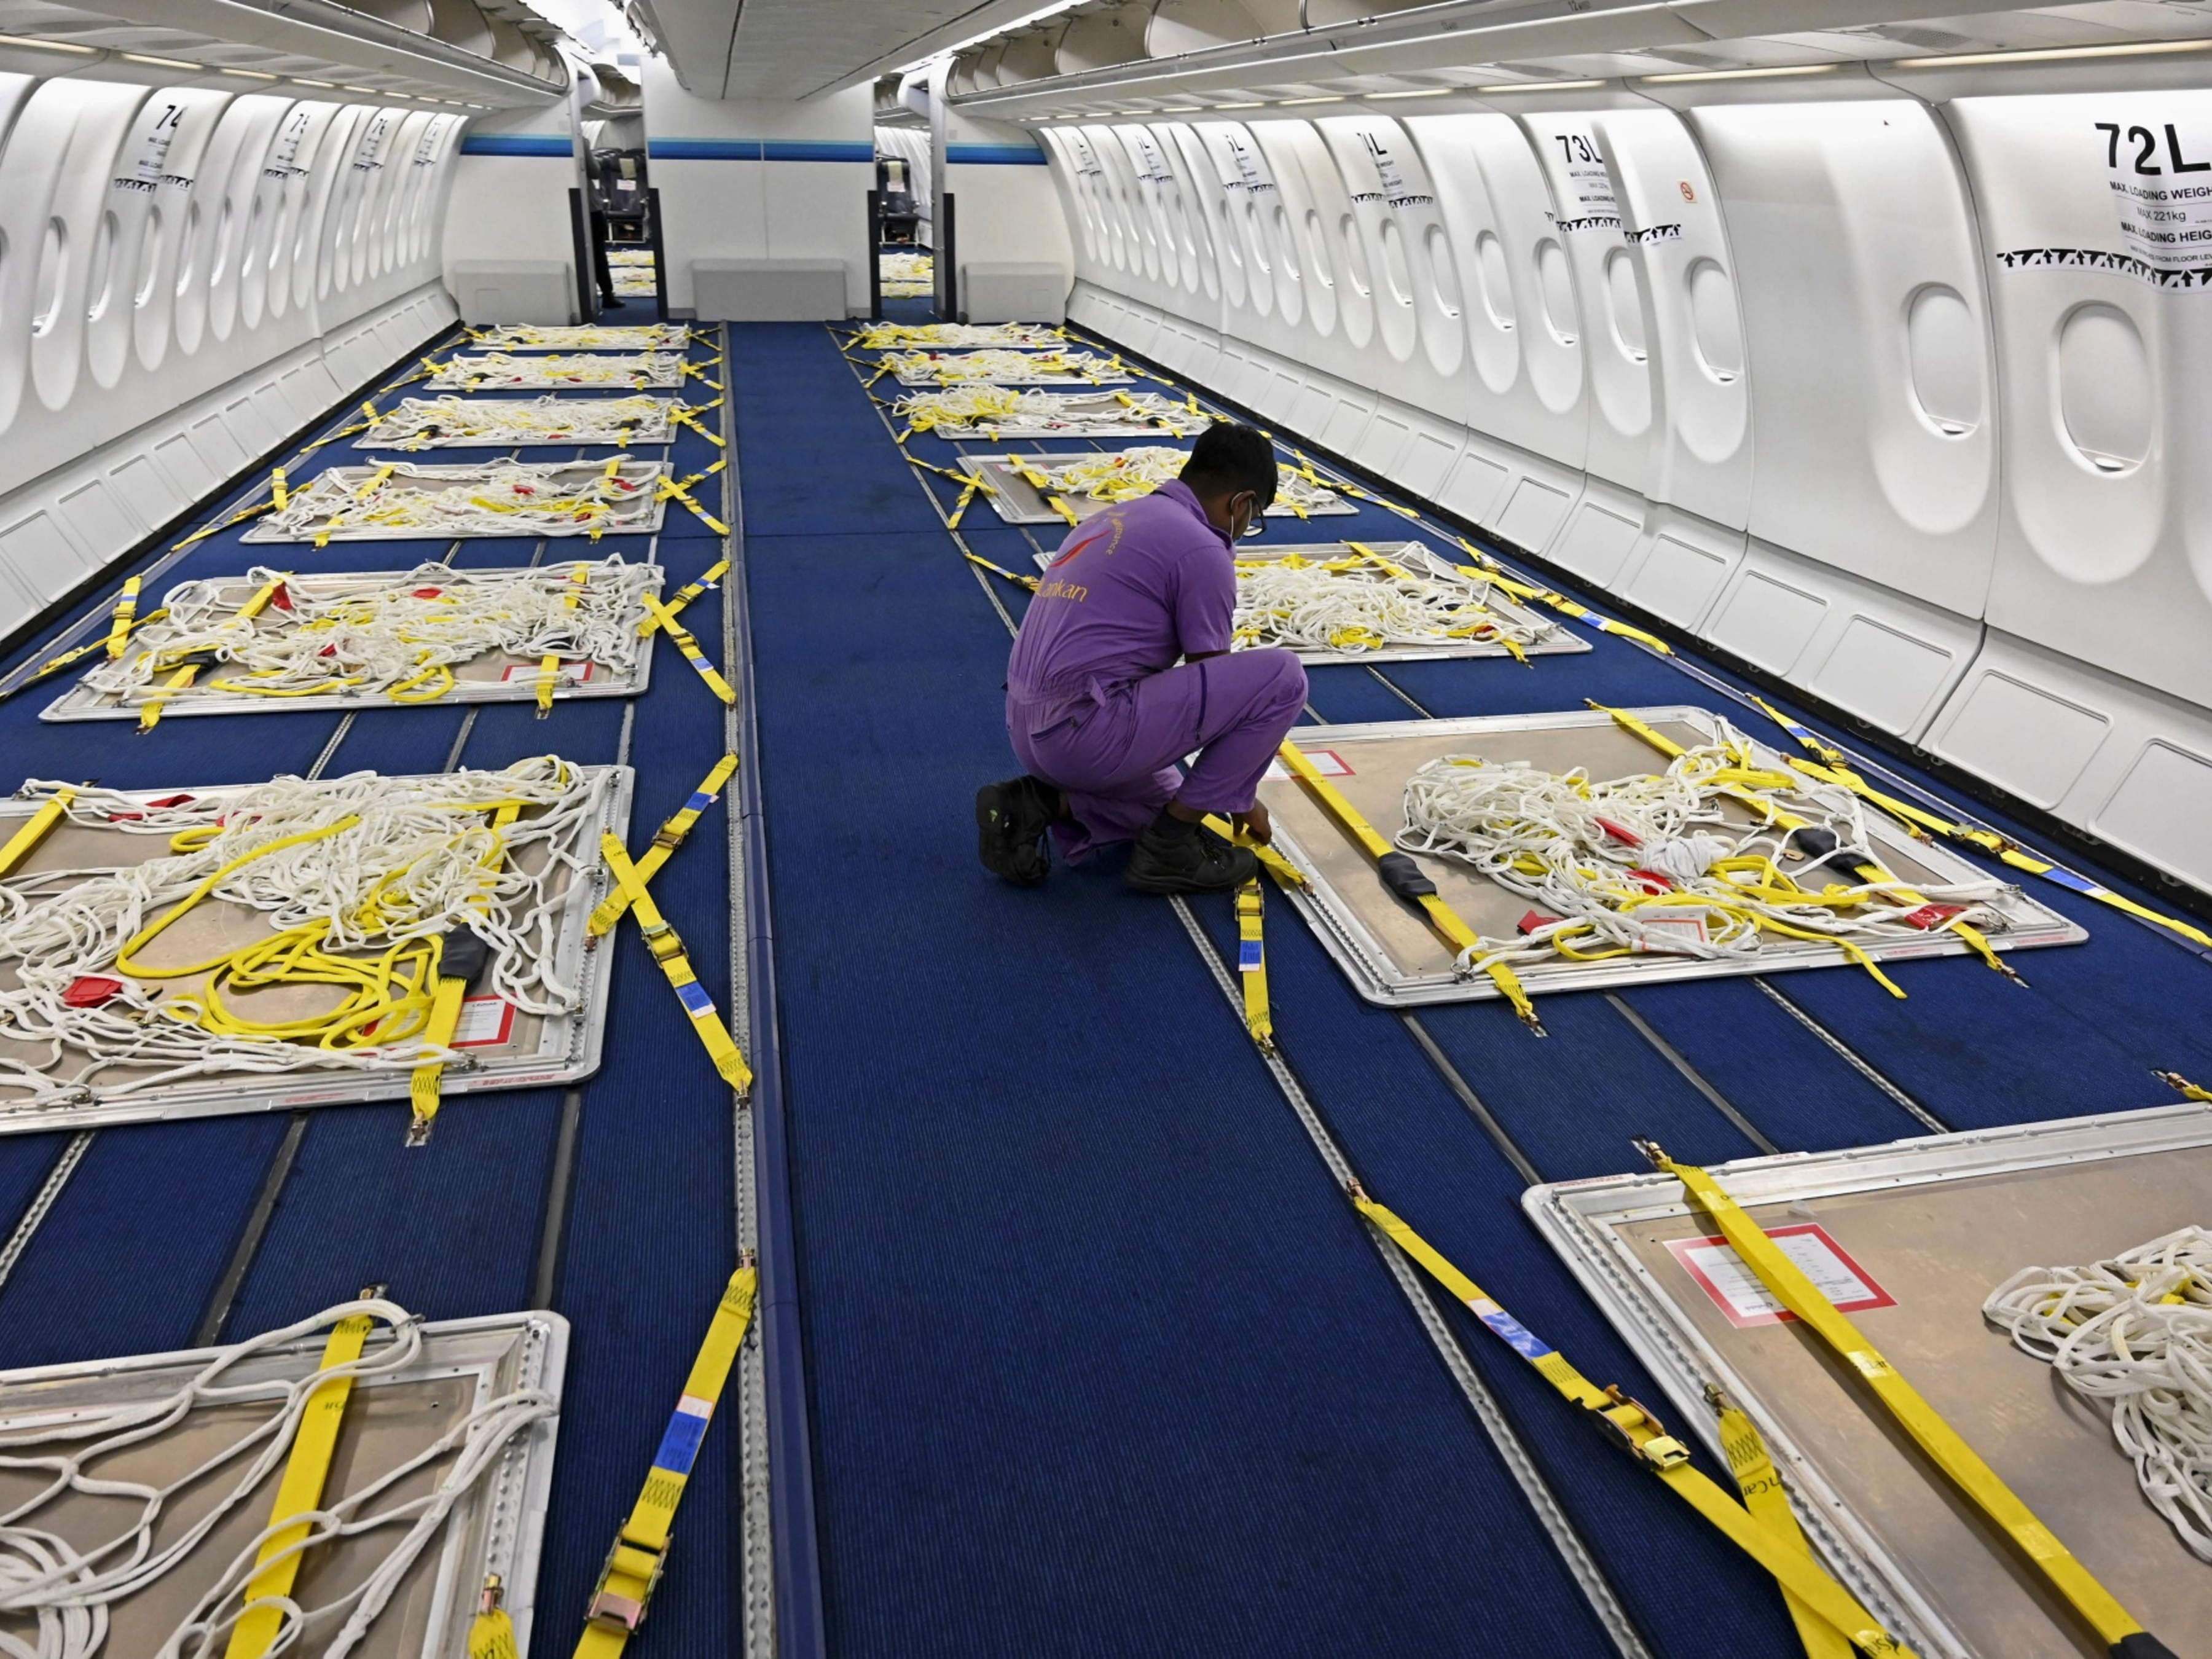 Airlines Are Removing Seats to Make Space for Gadgets and Seafood